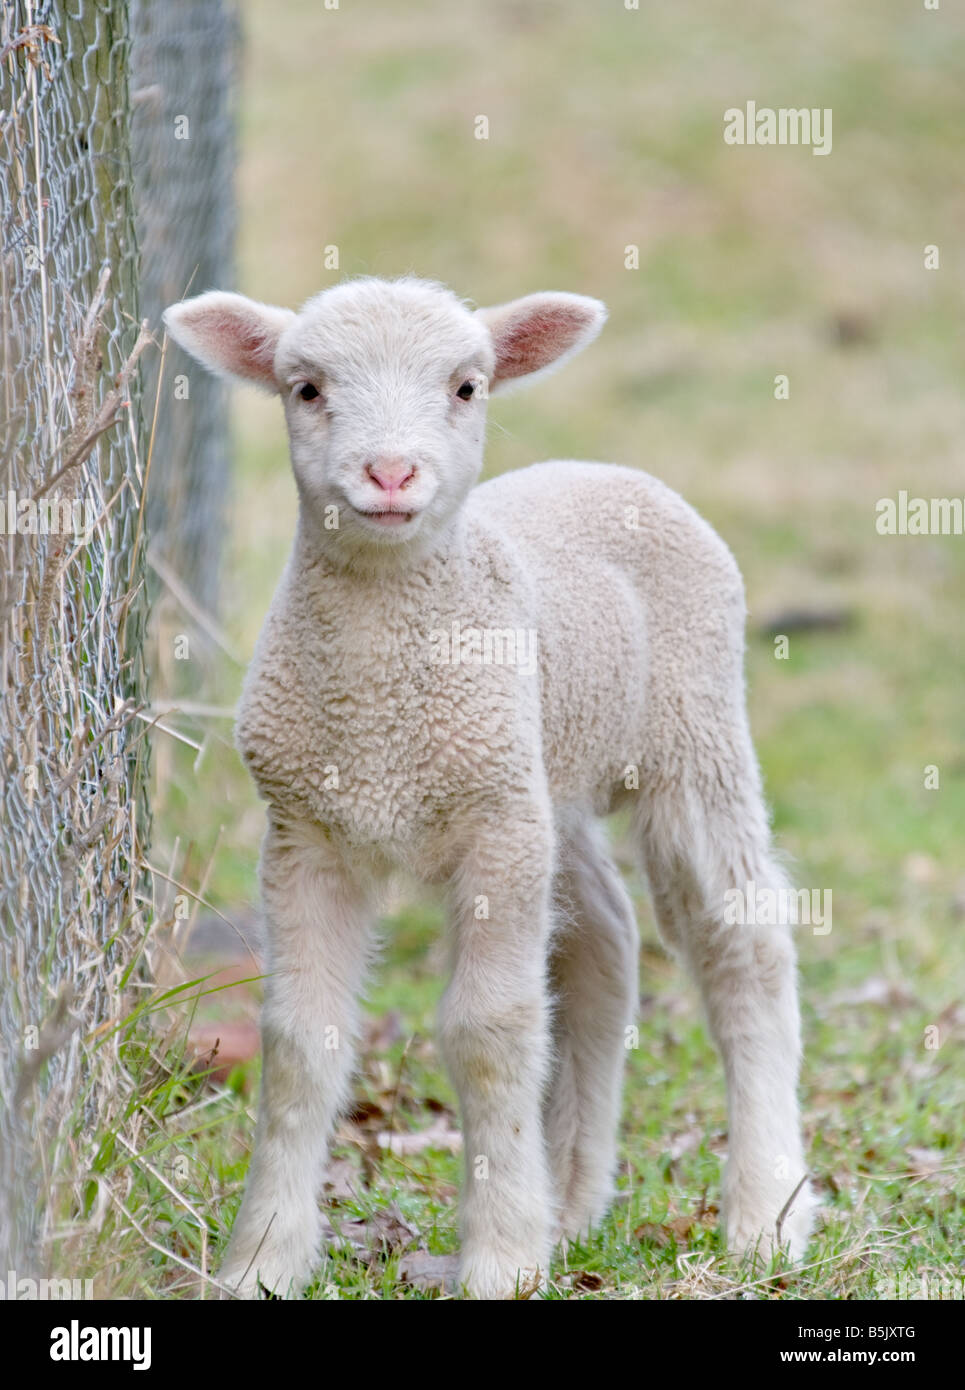 great image of a cute baby lamb - Stock Image